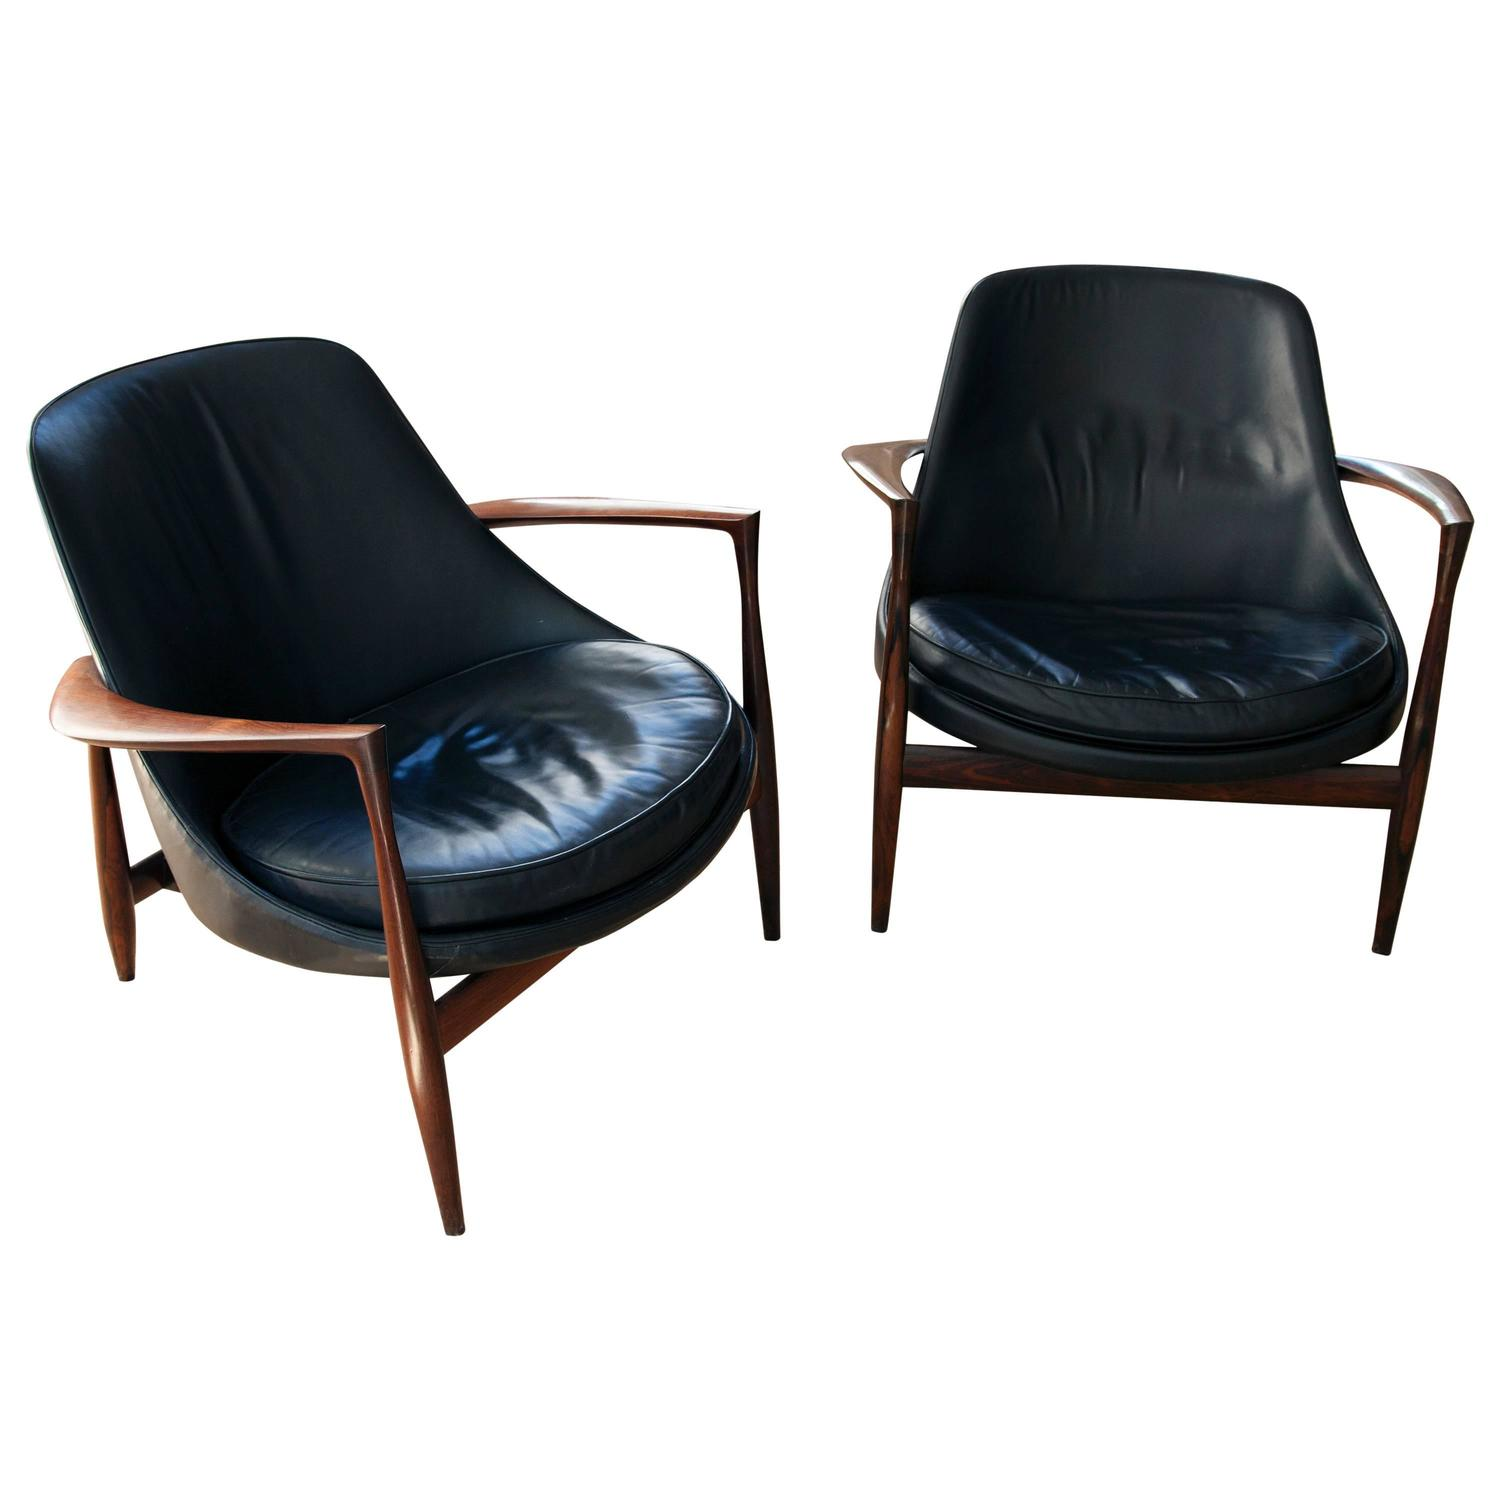 This sculptural pair of lounge chairs by ib kofod larsen is no longer - Exceptional Pair Of Rosewood Elizabeth Chairs By Ib Kofod Larsen At 1stdibs